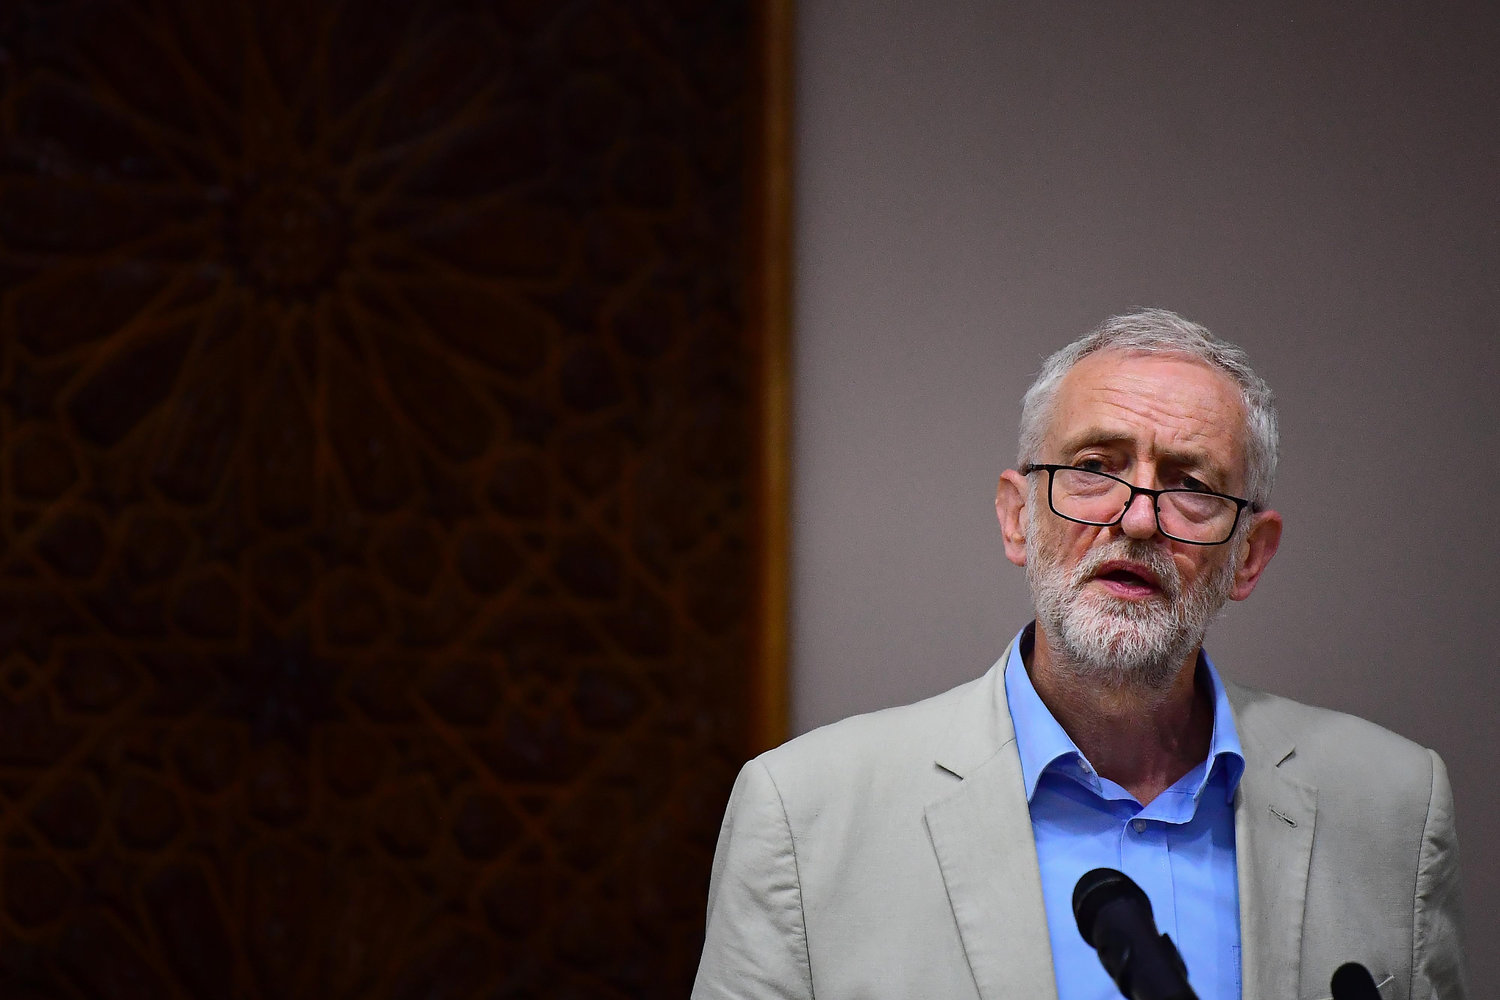 Labour leader Jeremy Corbyn speaking during a visit to Regents Park Mosque in London.